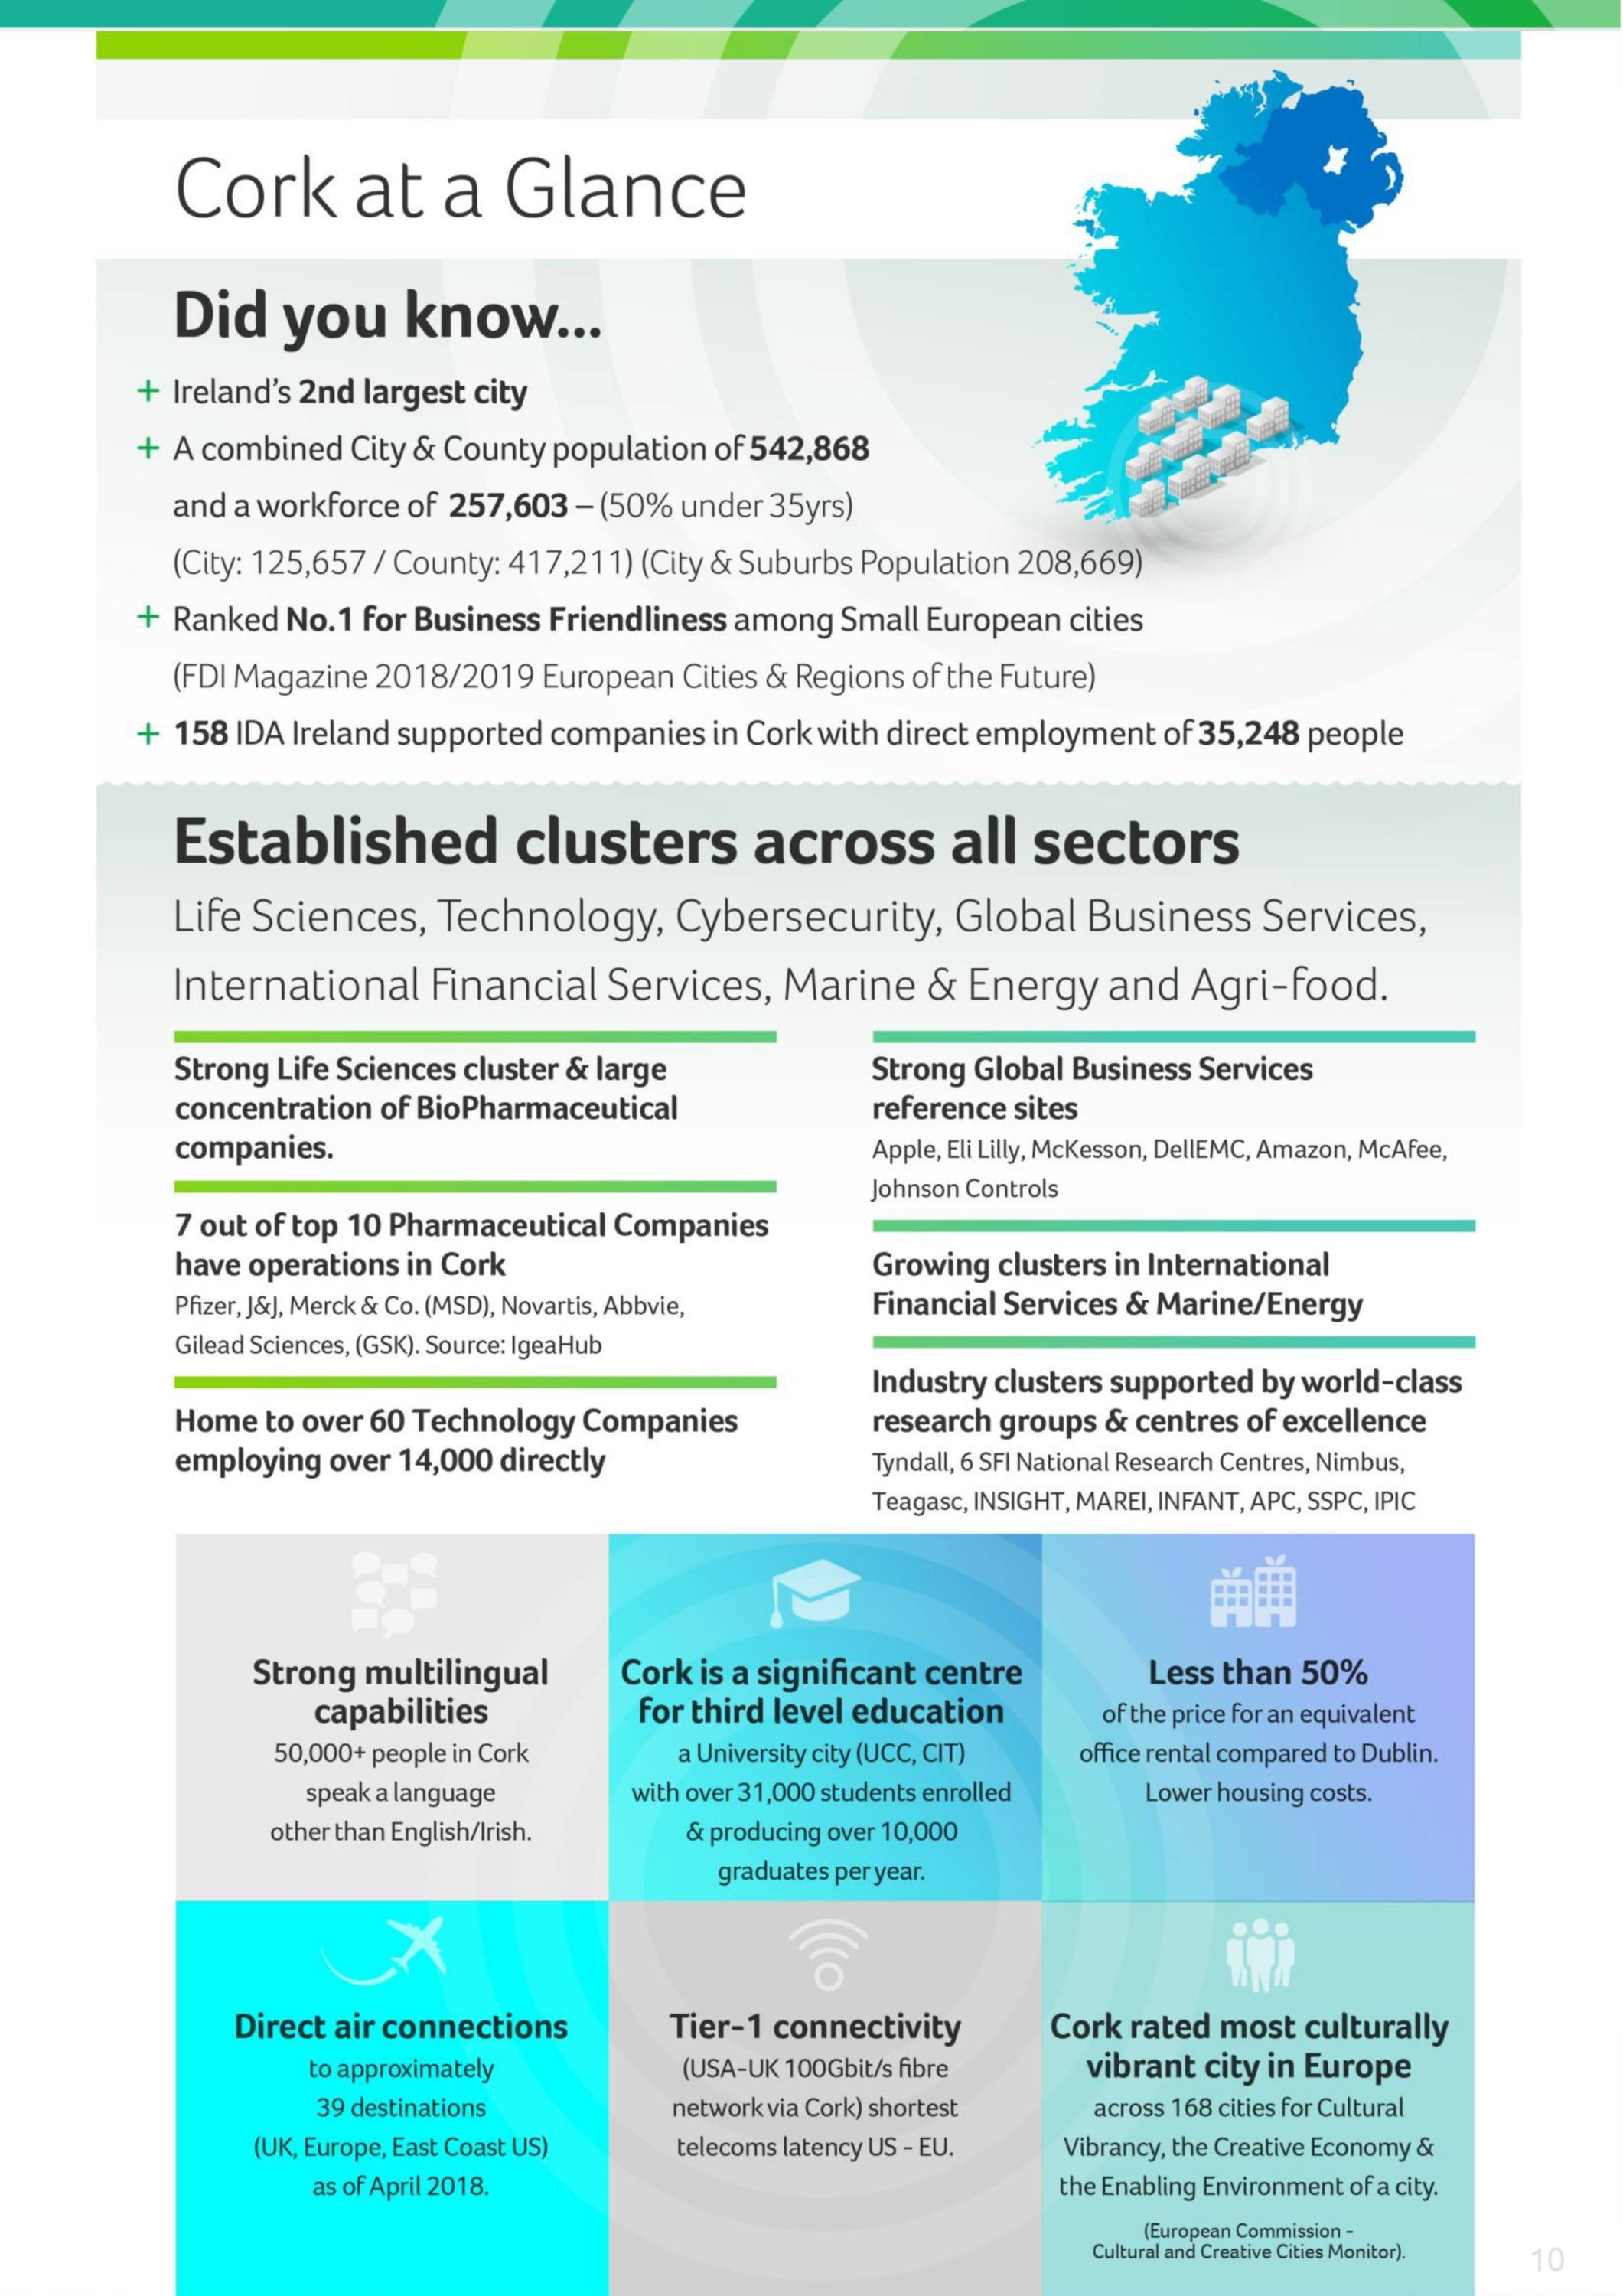 Life Sciences: Future looks bright for Life Sciences cluster